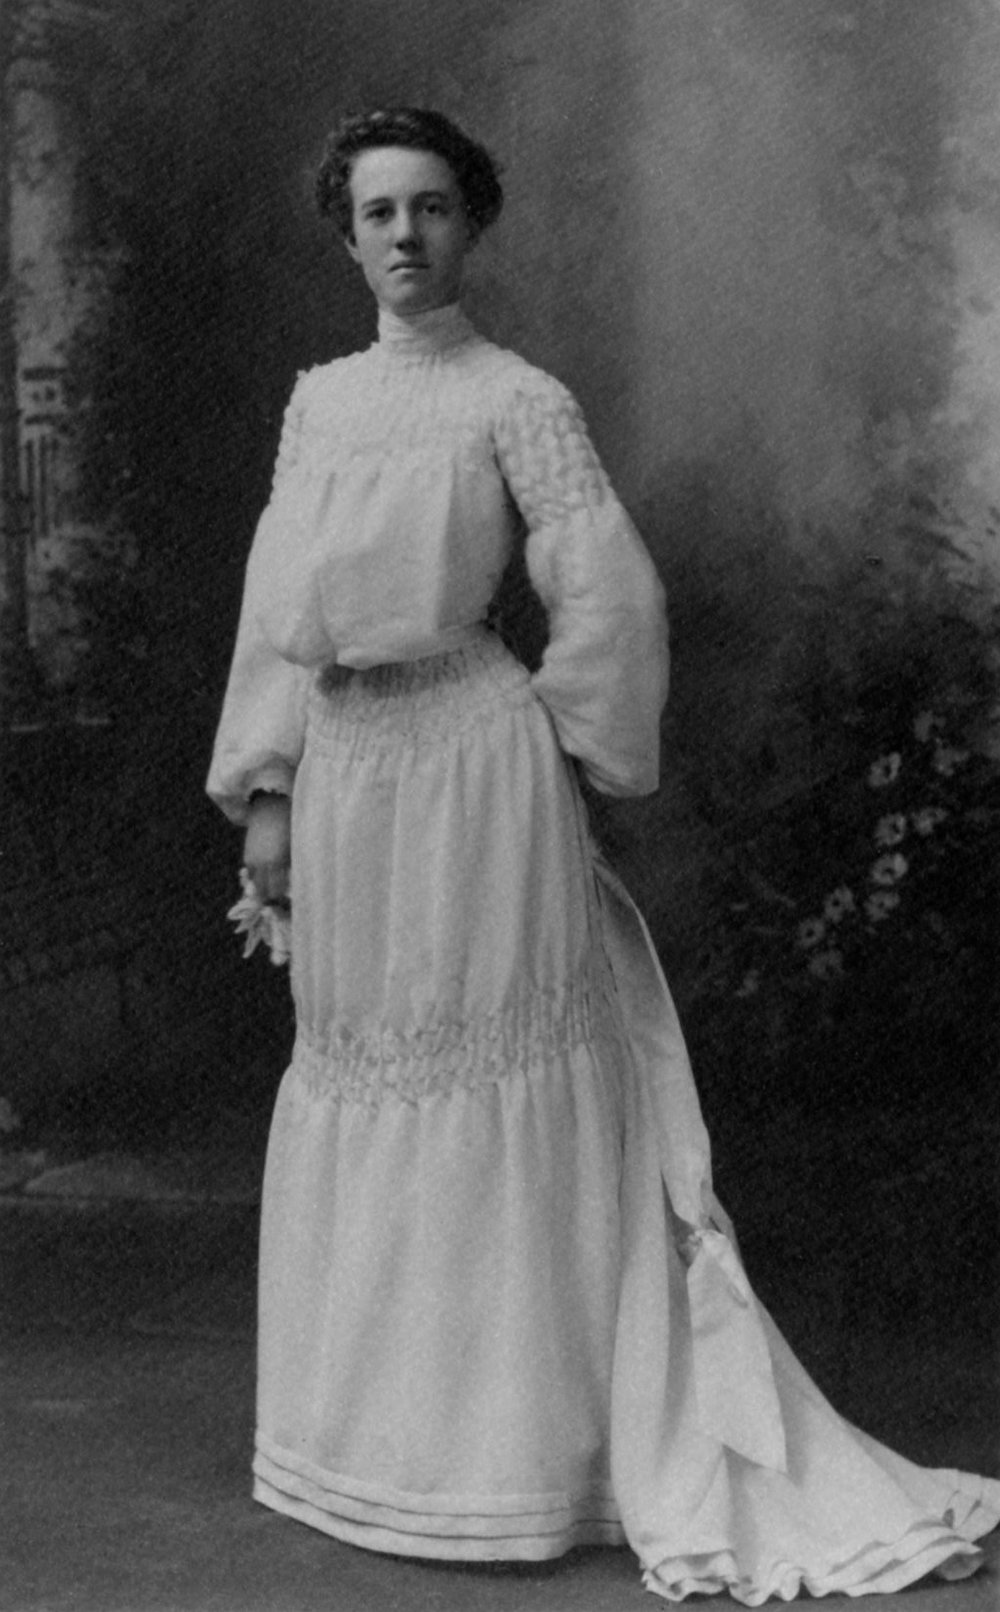 Jessie Hill Thomson Hunt at her wedding in 1903